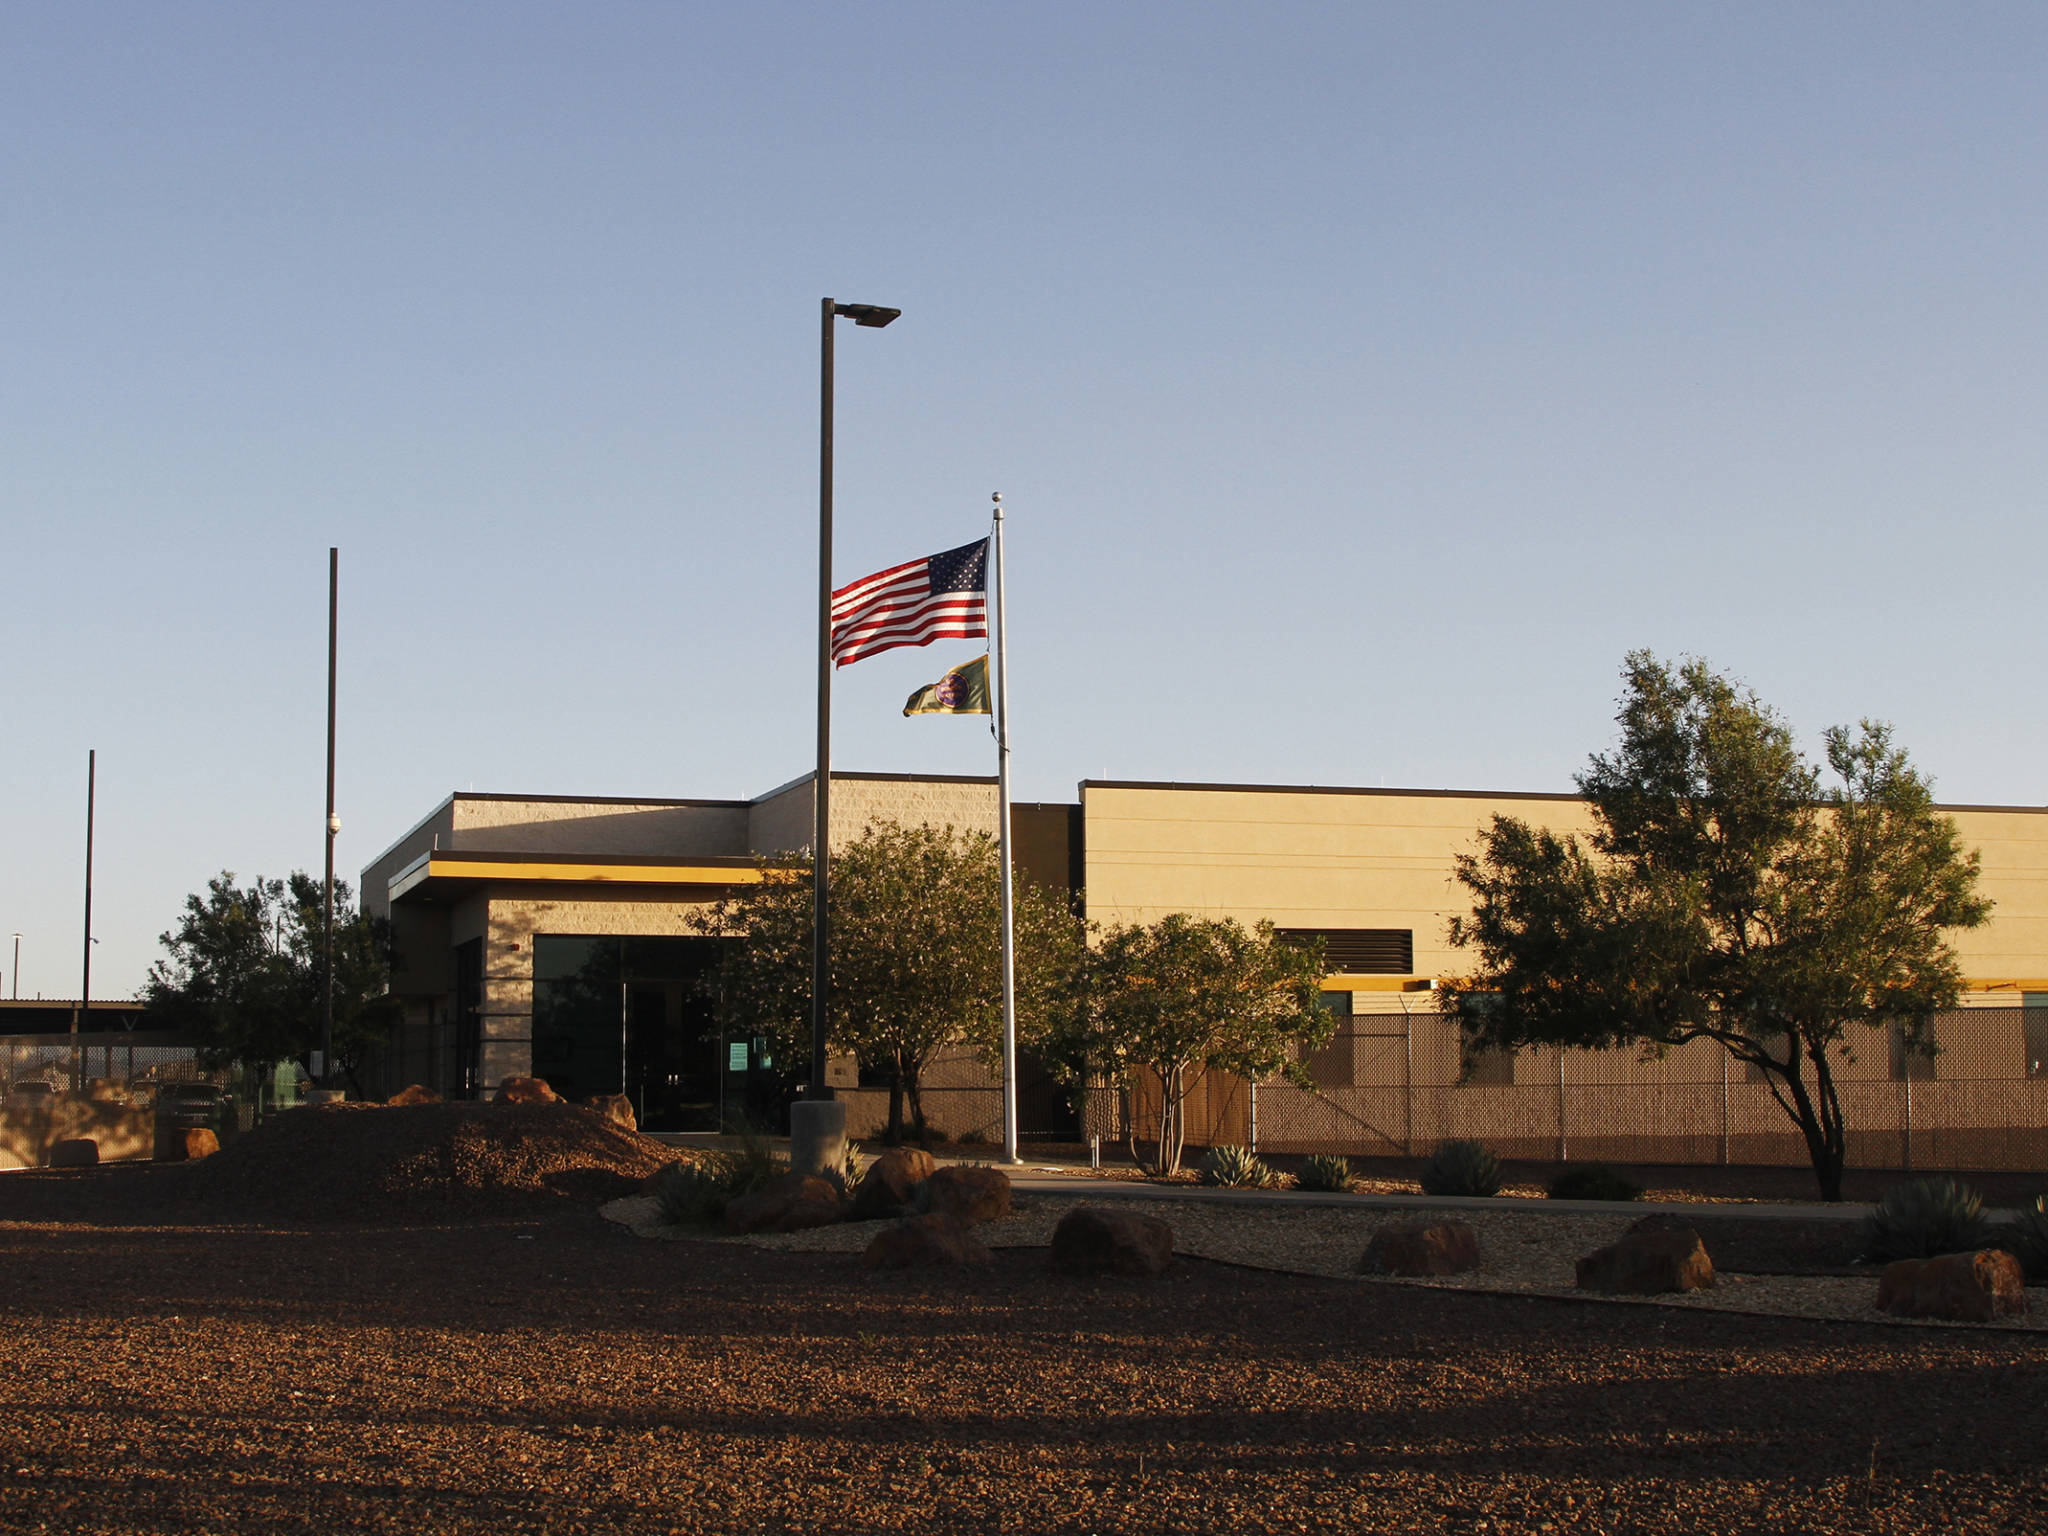 Migrant Children Moved From Border Patrol Center After Outcry